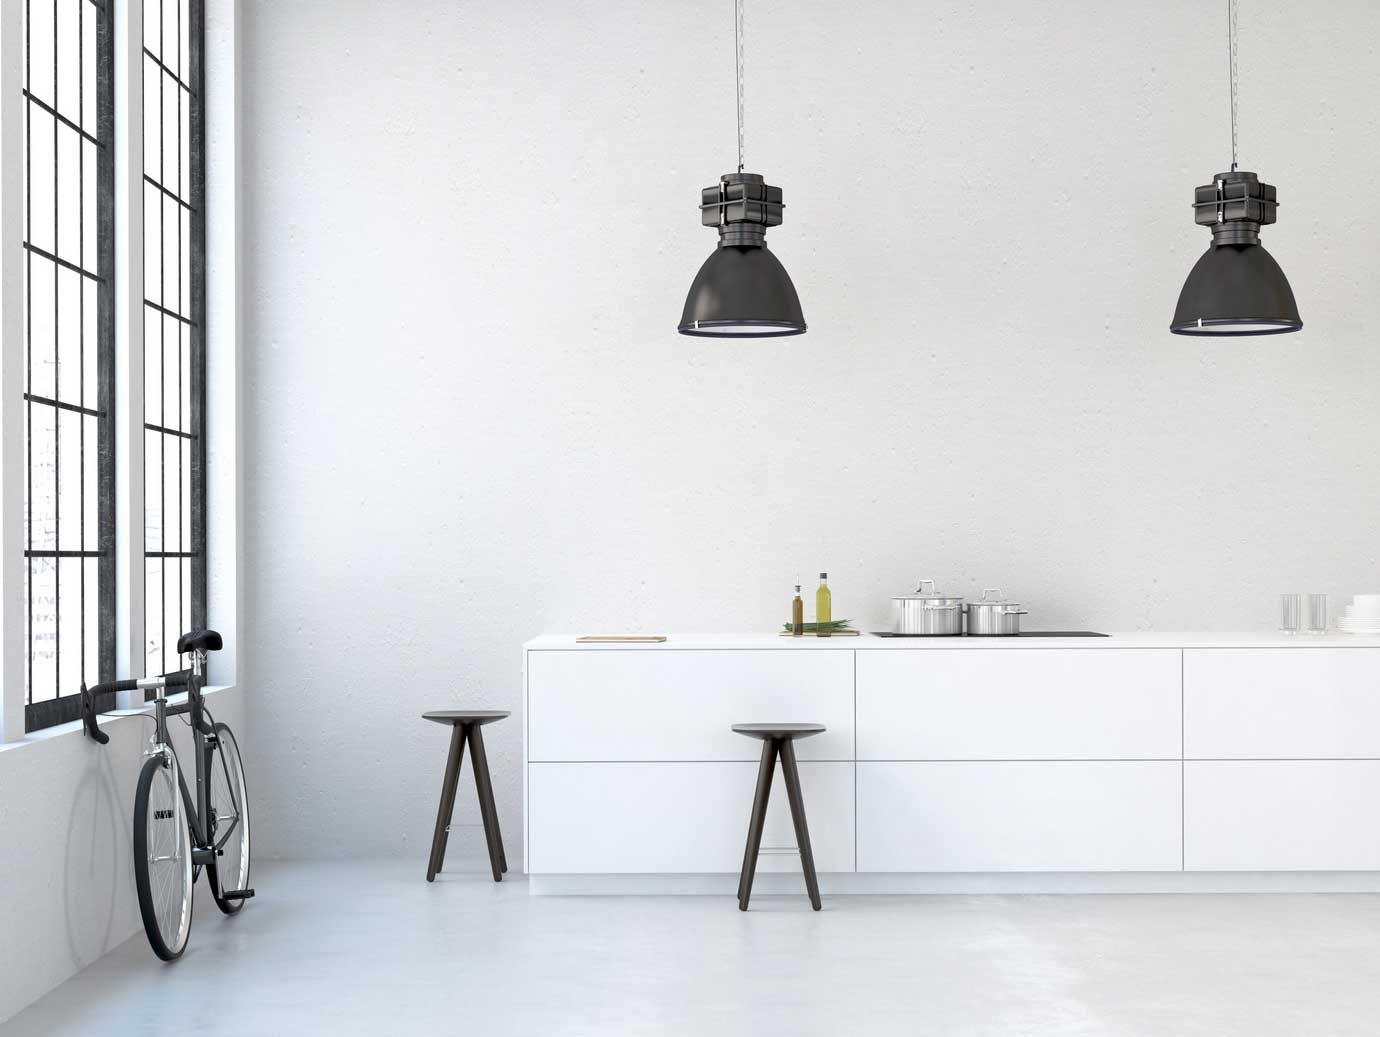 Top 5 Unusual Uses for Kitchen Cabinets